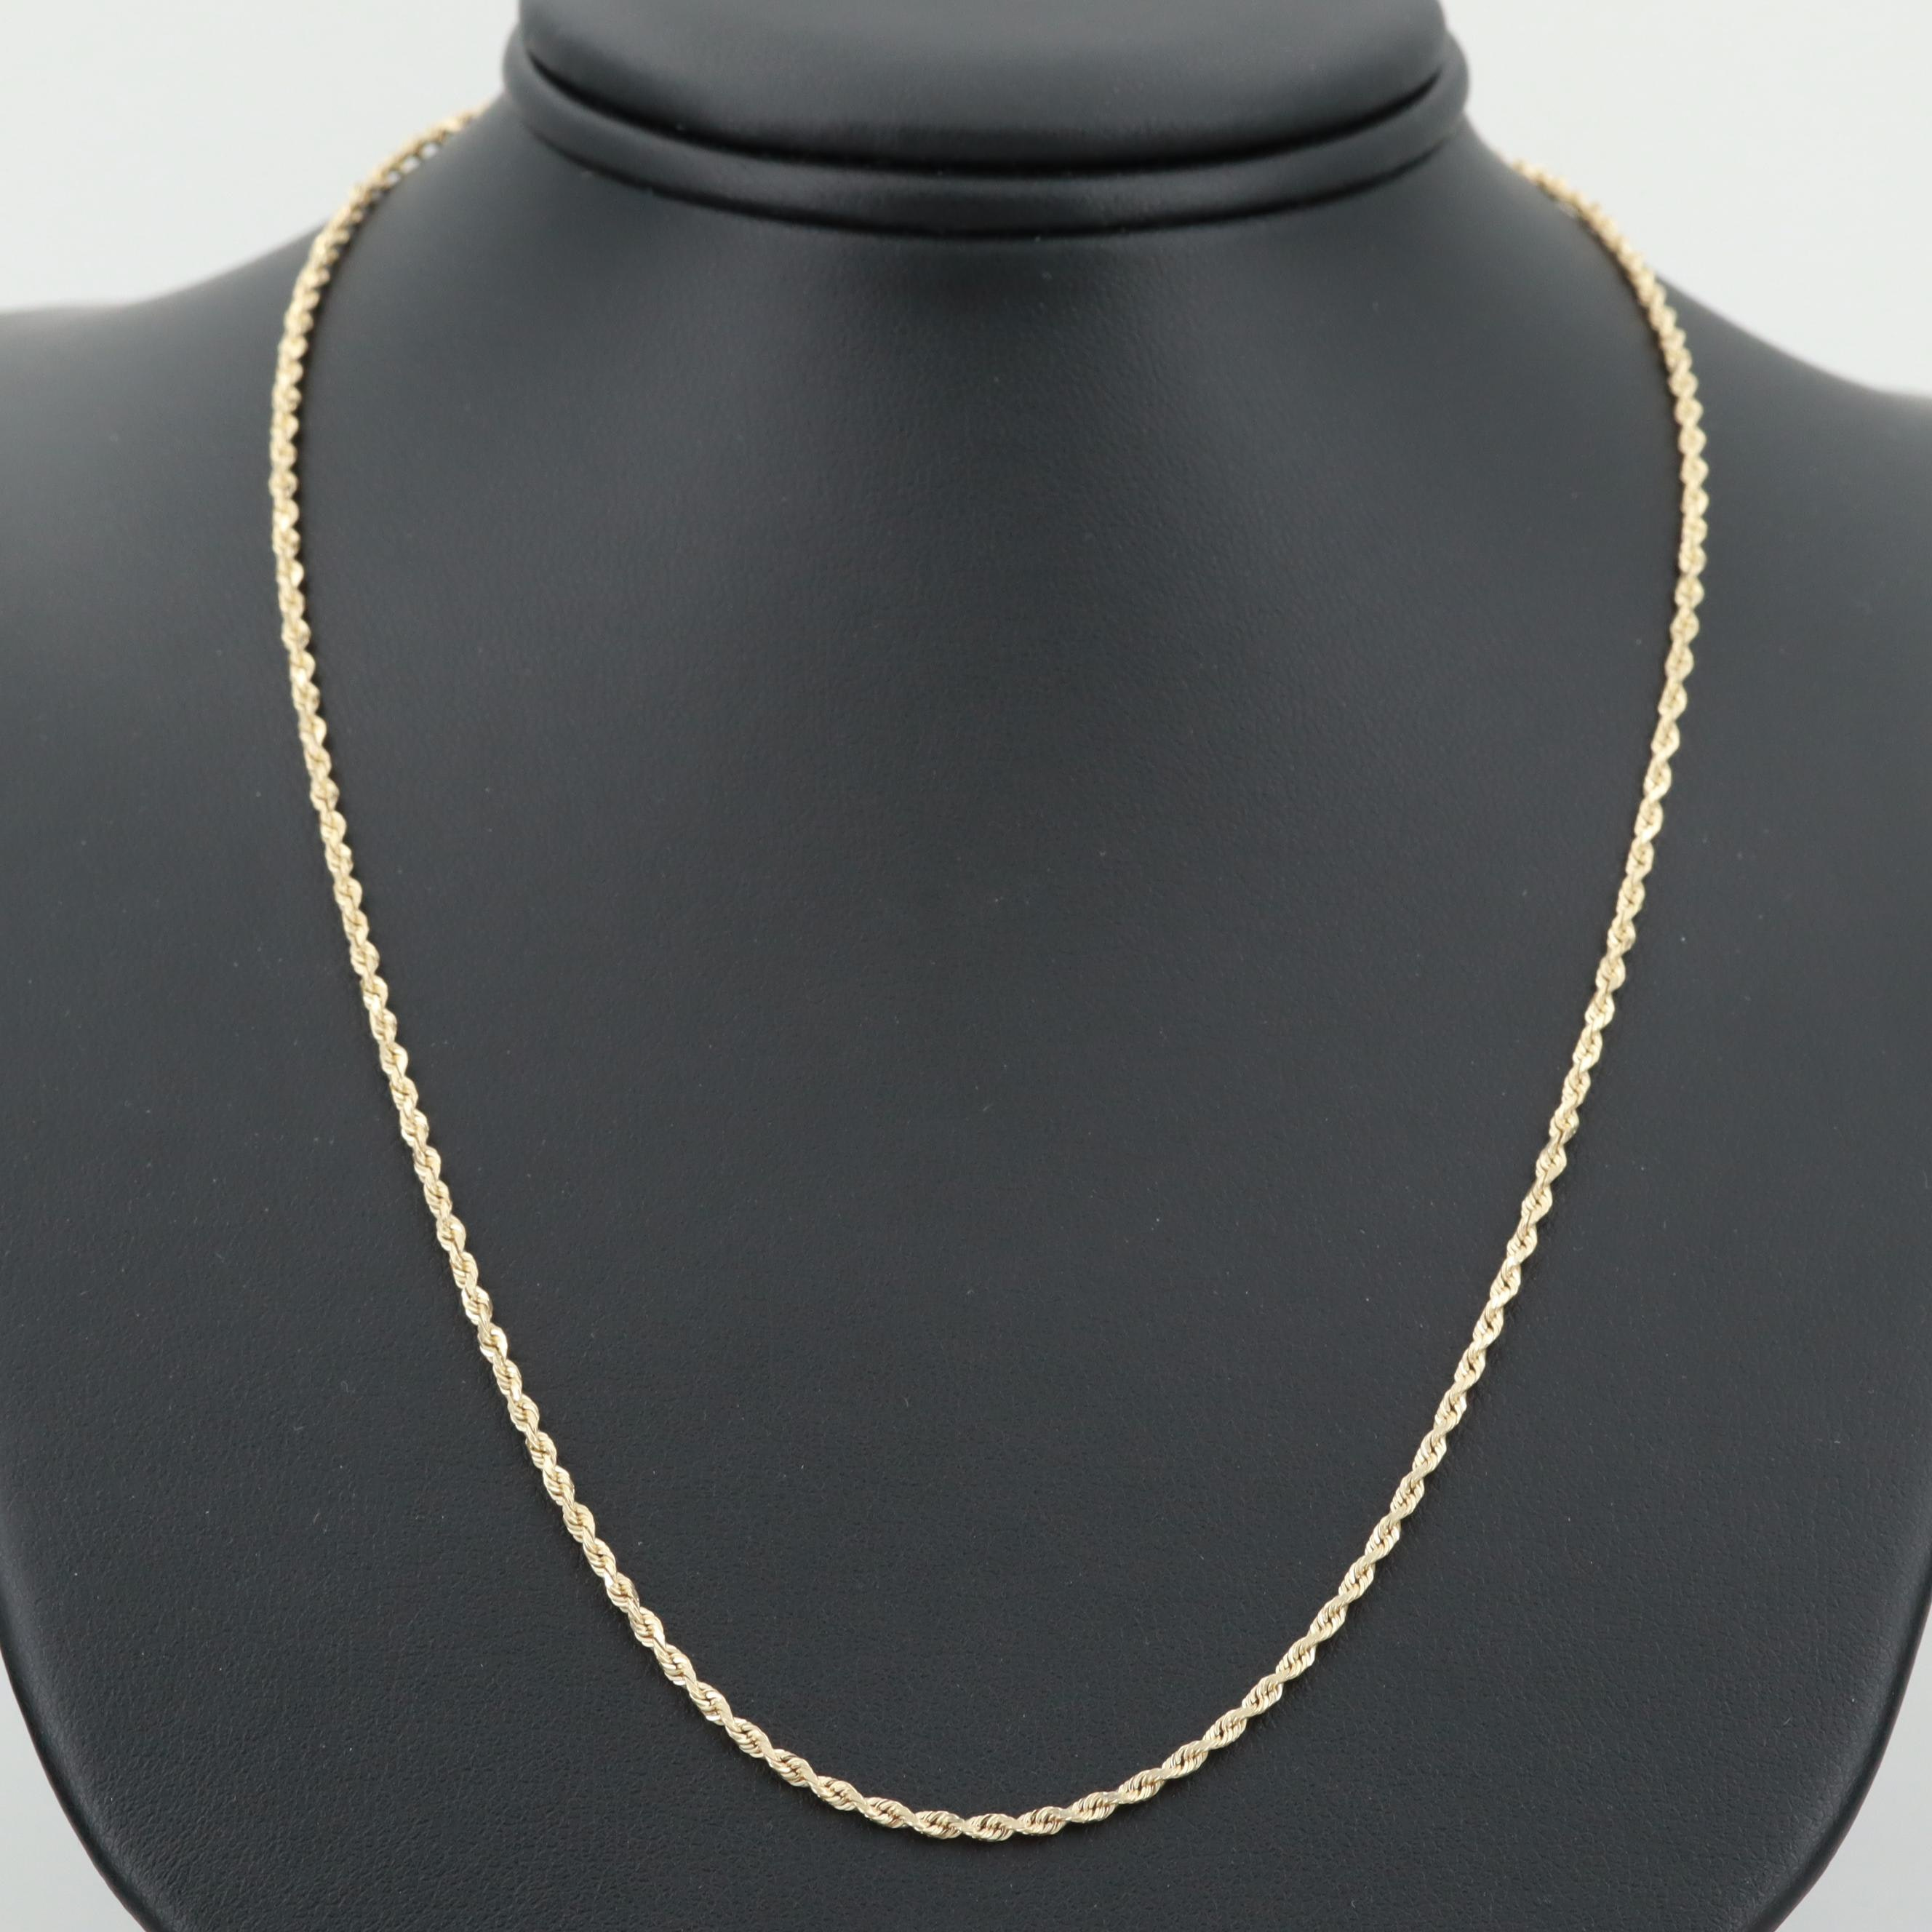 Michael Anthony 14K Yellow Gold Rope Chain Necklace